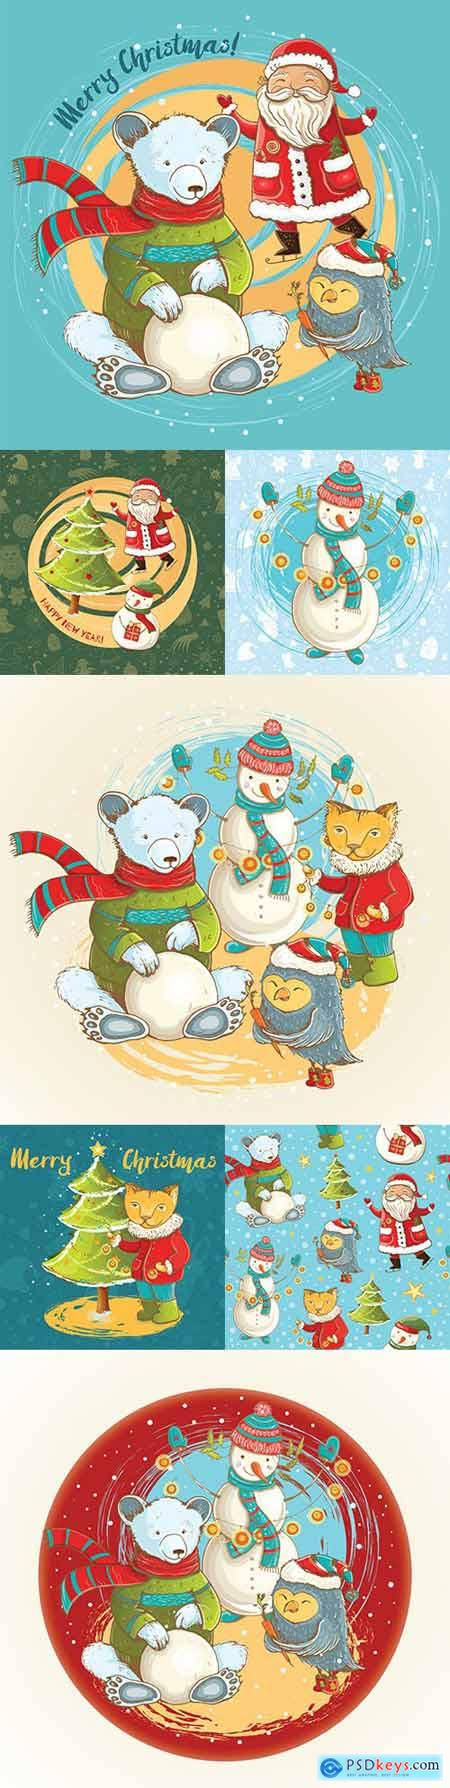 Christmas cartoon illustration snowman and fun Santa